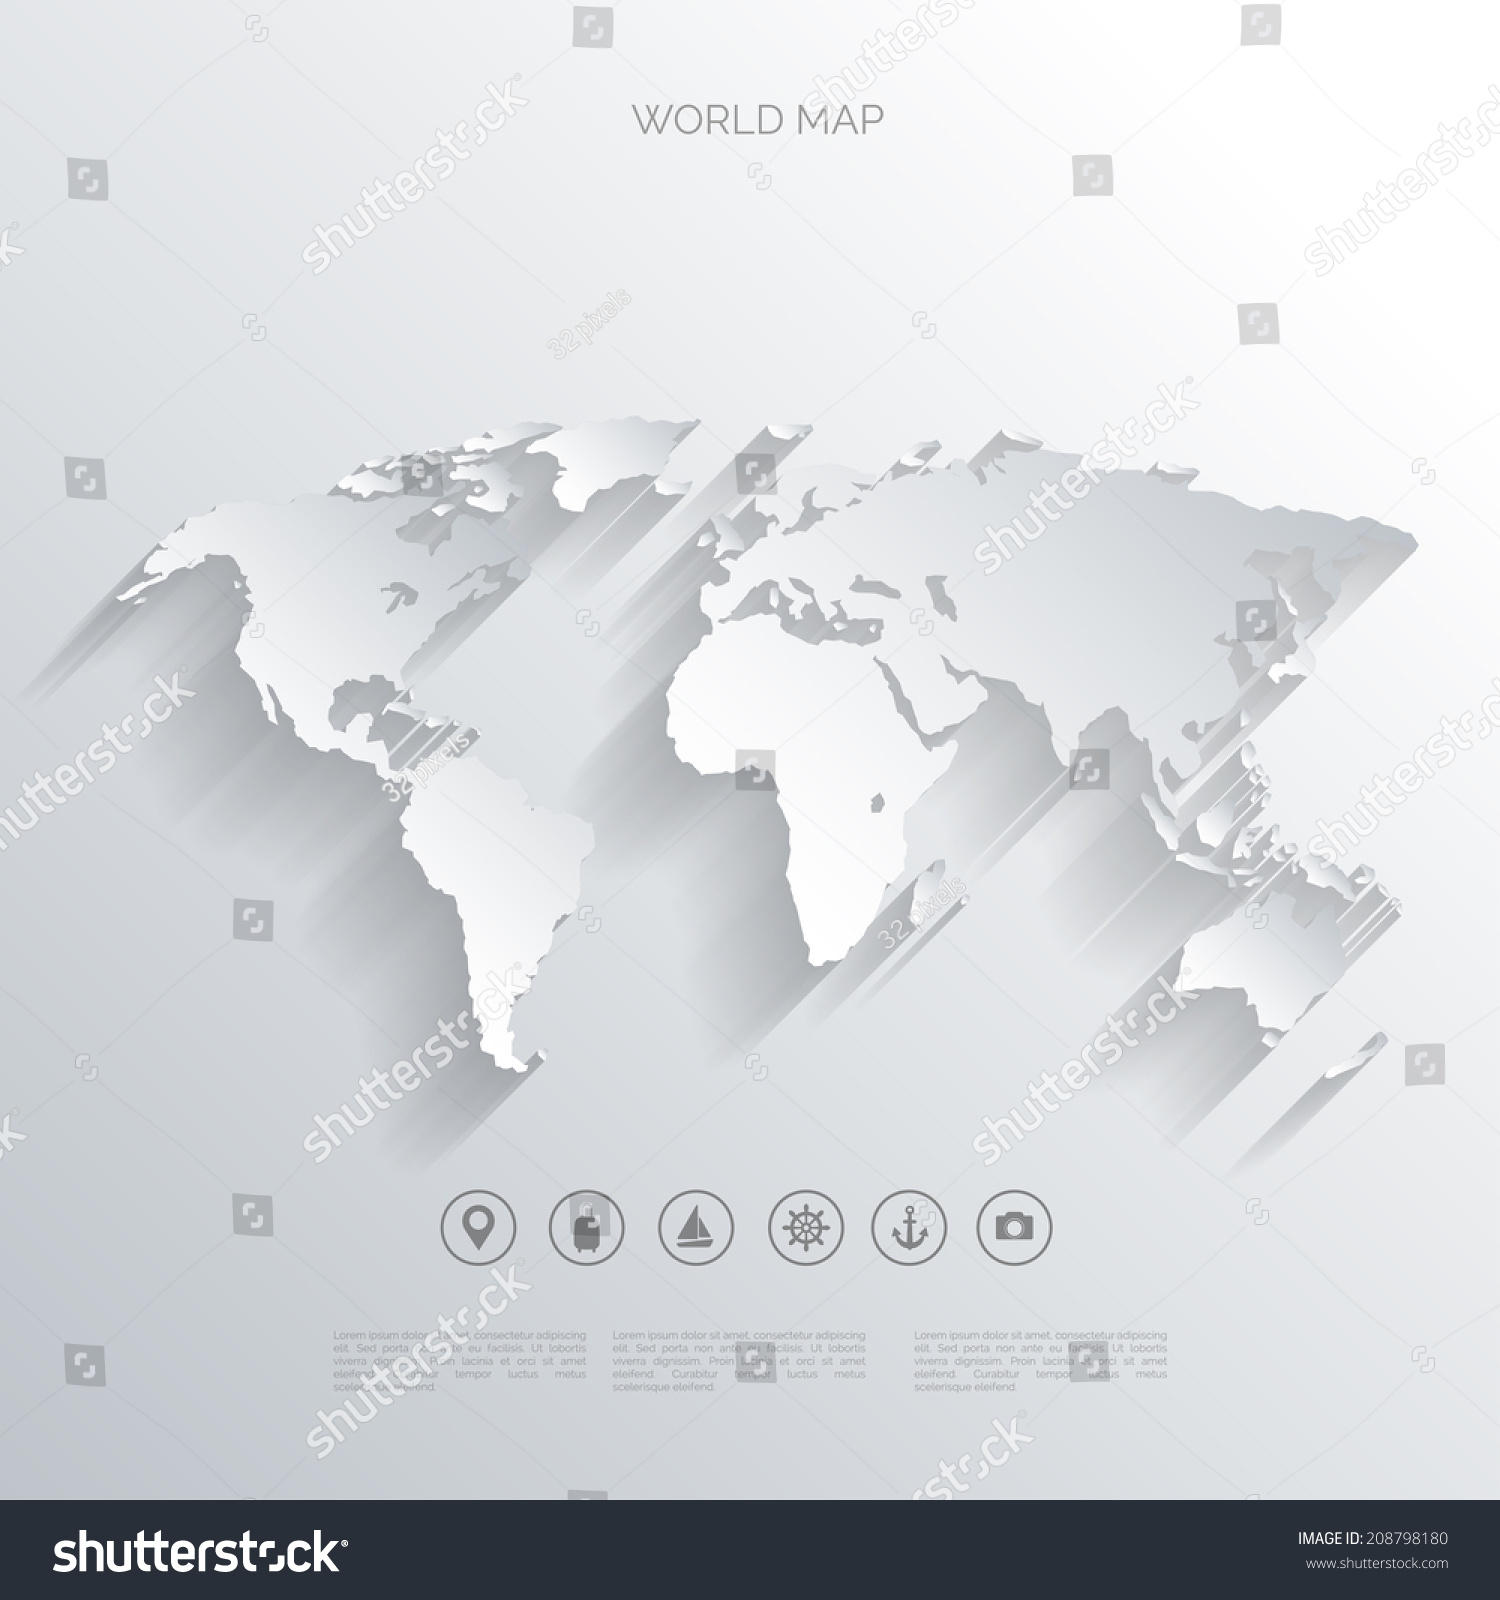 World map flat styleearthgloberoute planning asiaafricanorth world map in a flat styleearthglobeute planningp of gumiabroncs